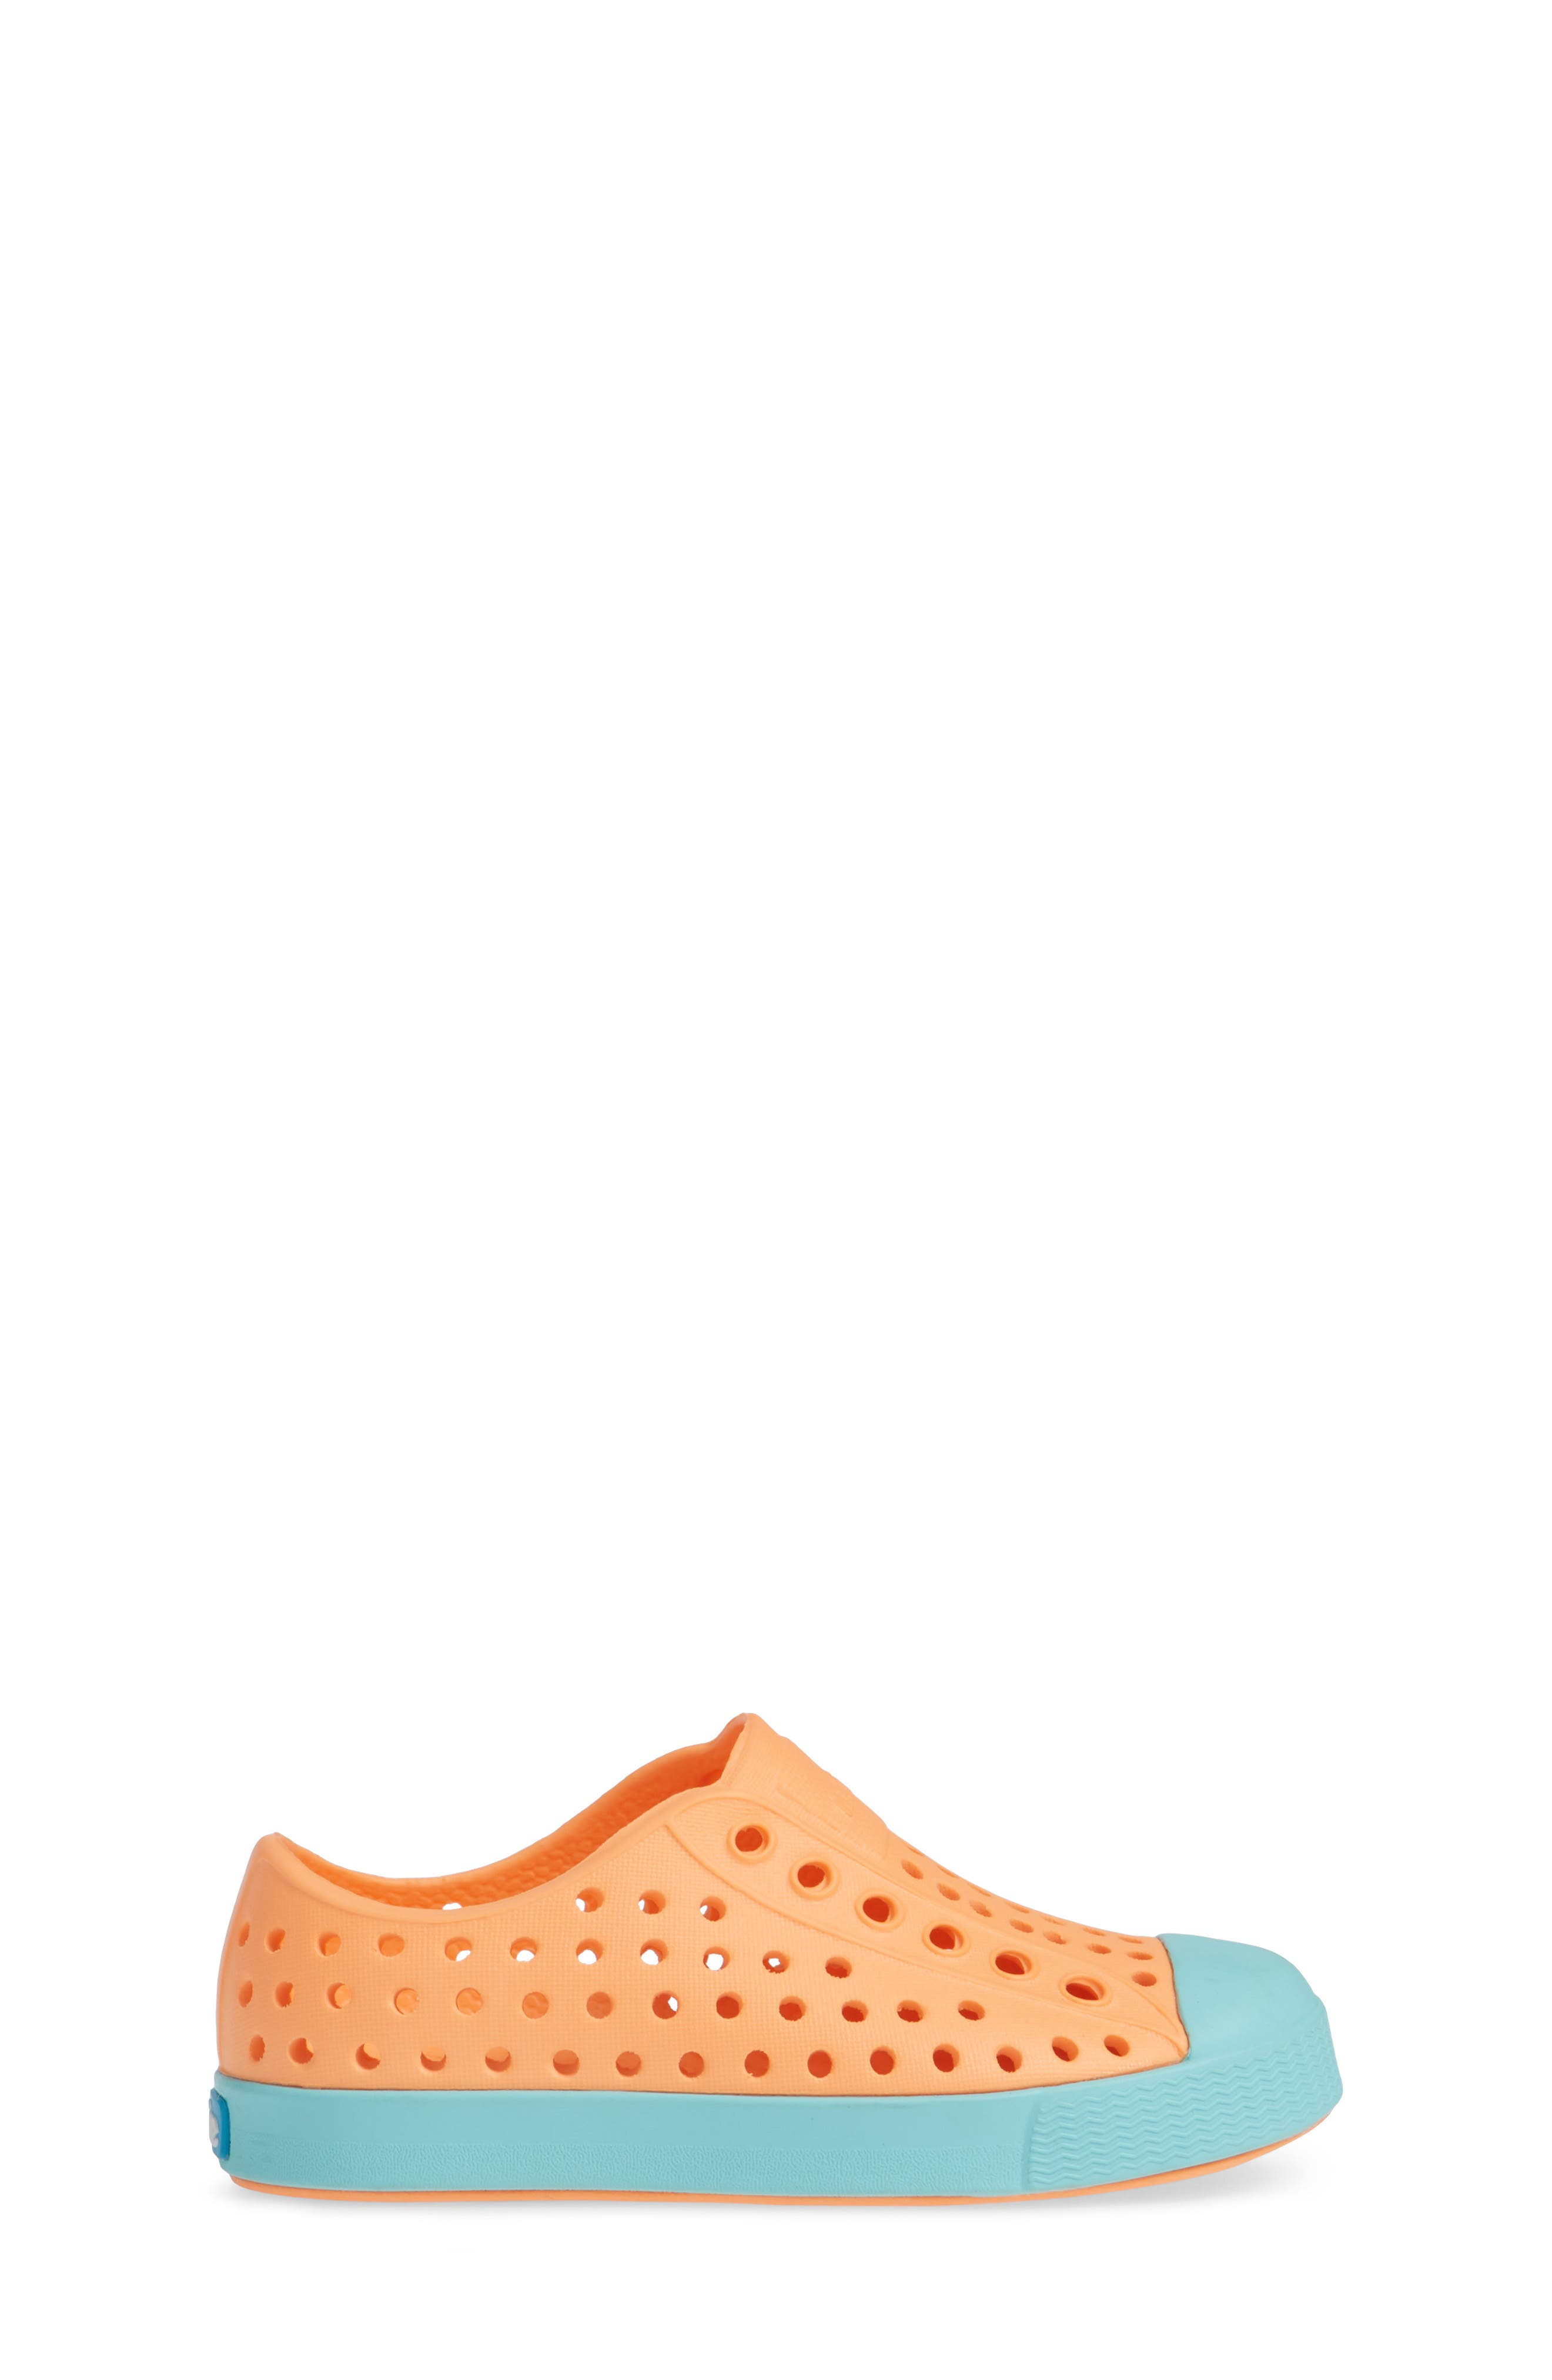 'Jefferson' Water Friendly Slip-On Sneaker,                             Alternate thumbnail 3, color,                             LASER ORANGE/ SHERBET BLUE